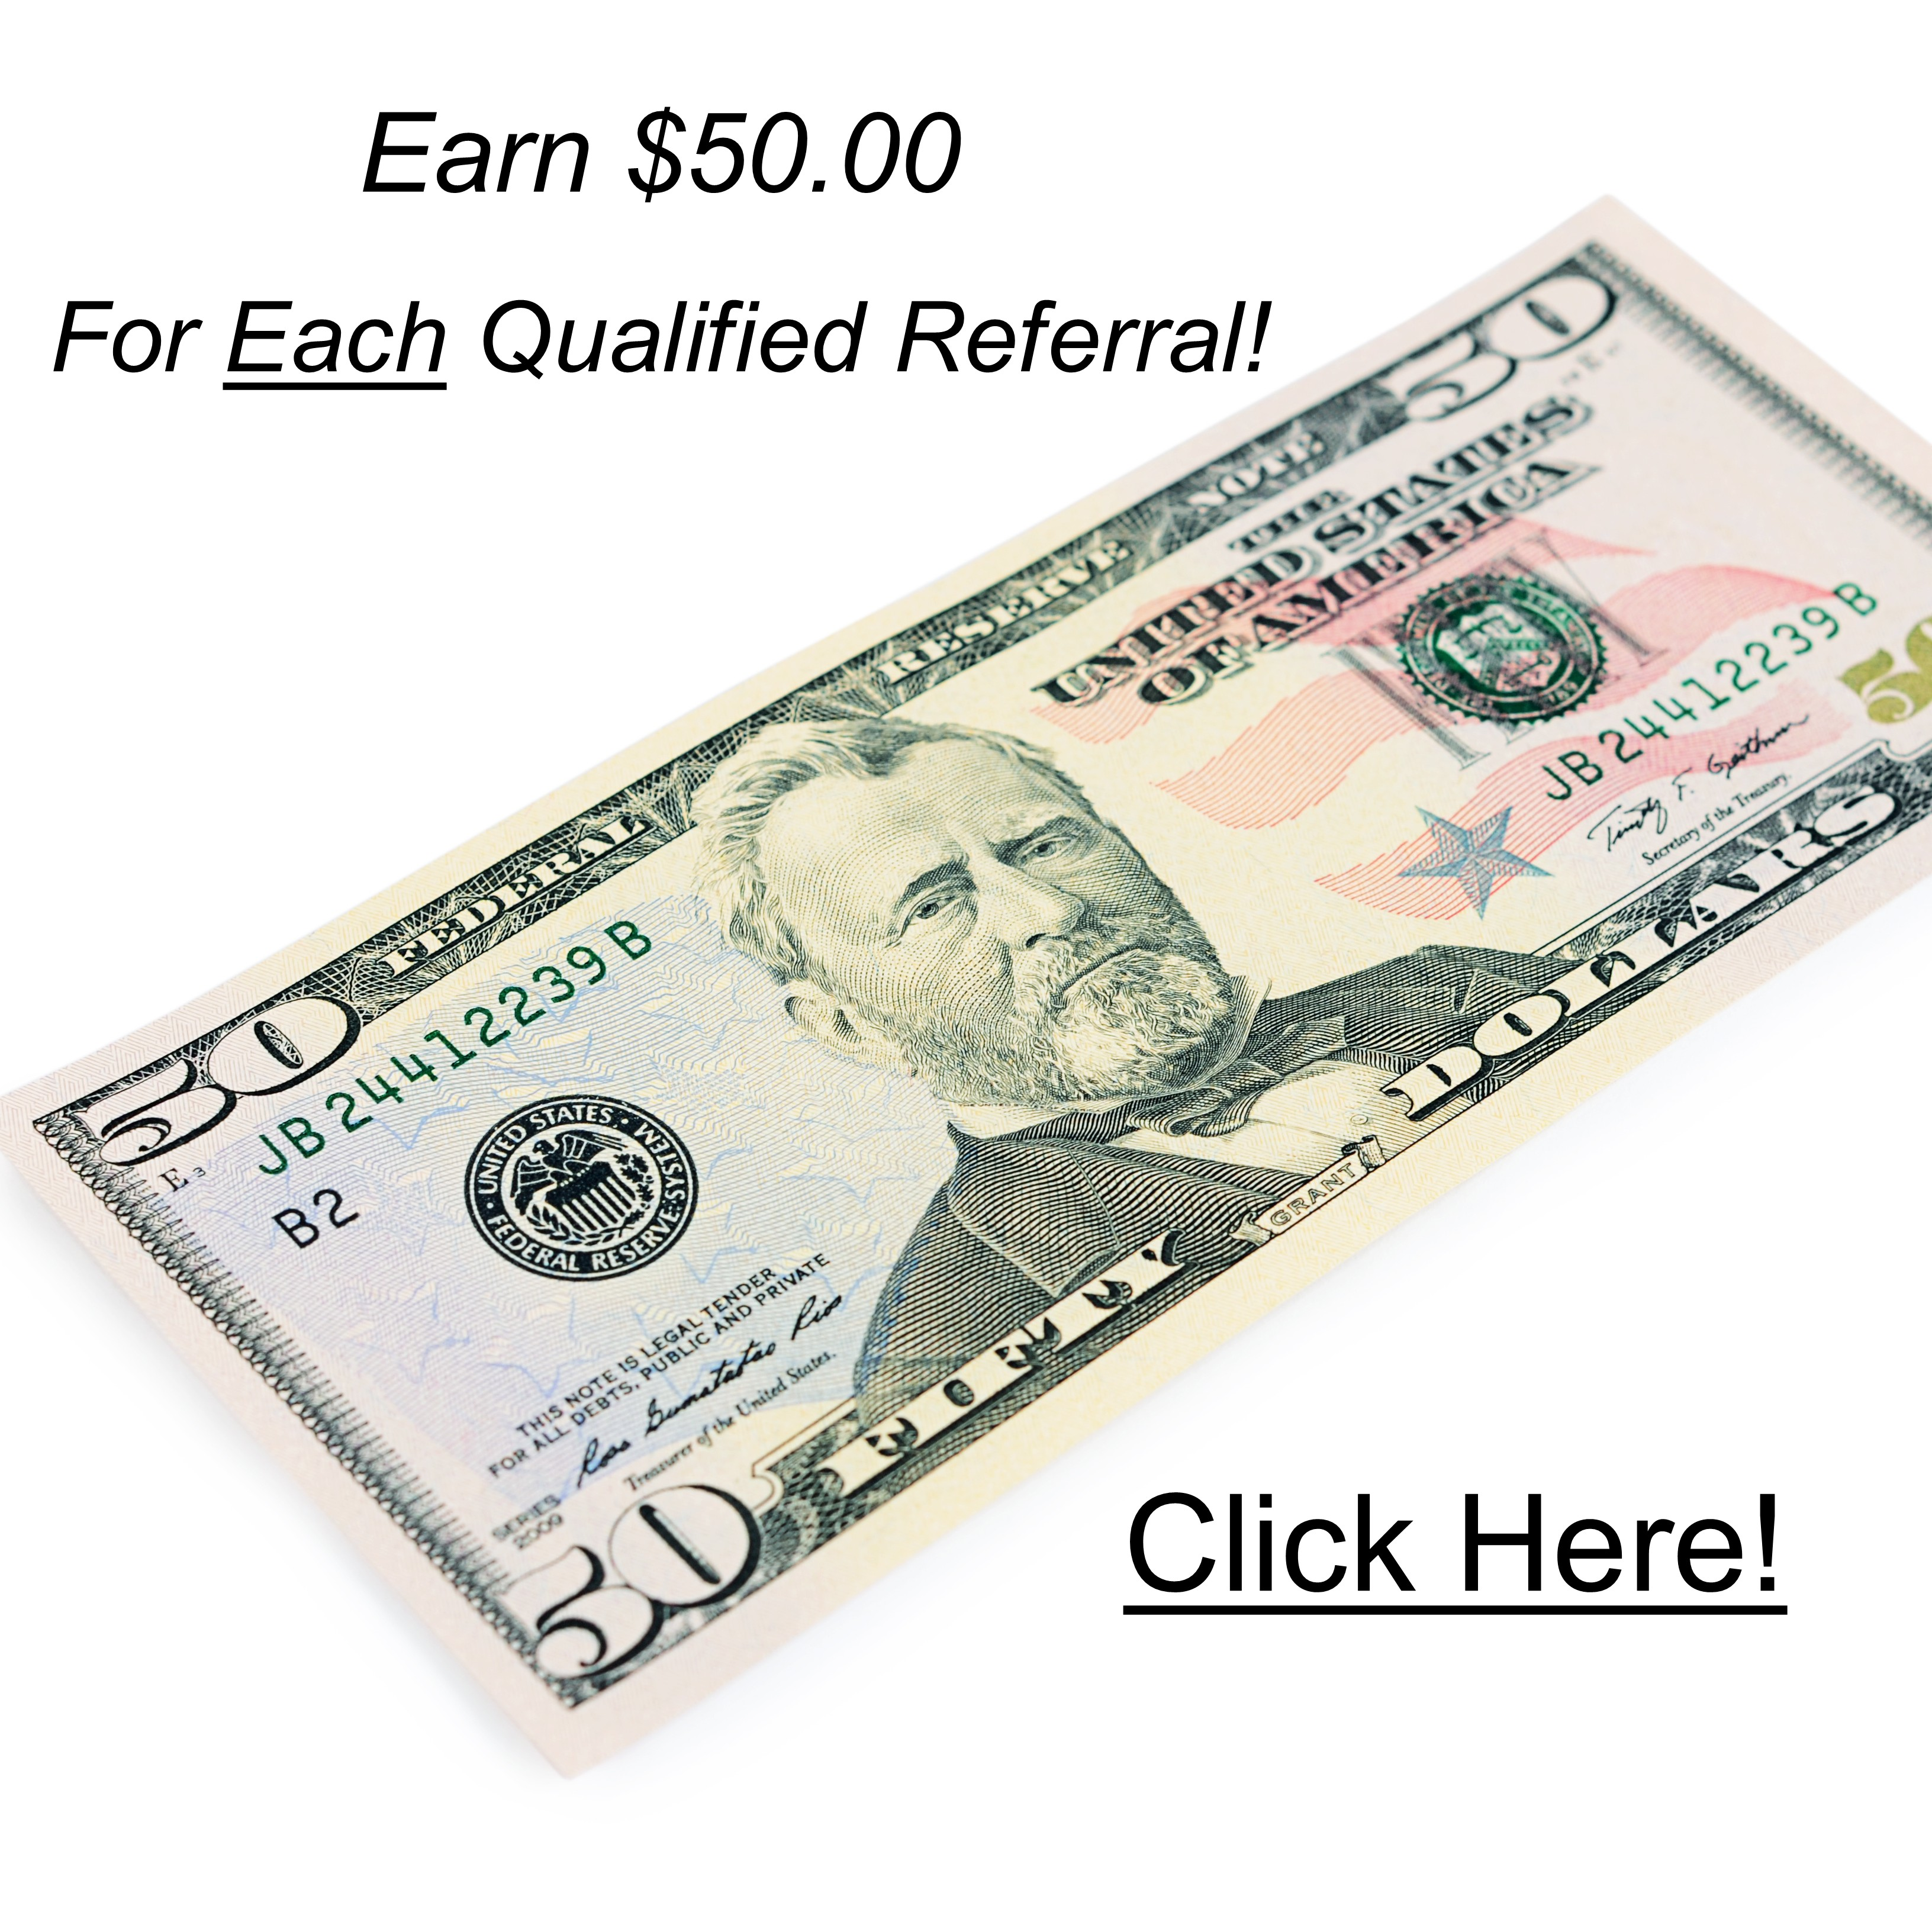 Earn 50 Dollars Per Qualified Referral